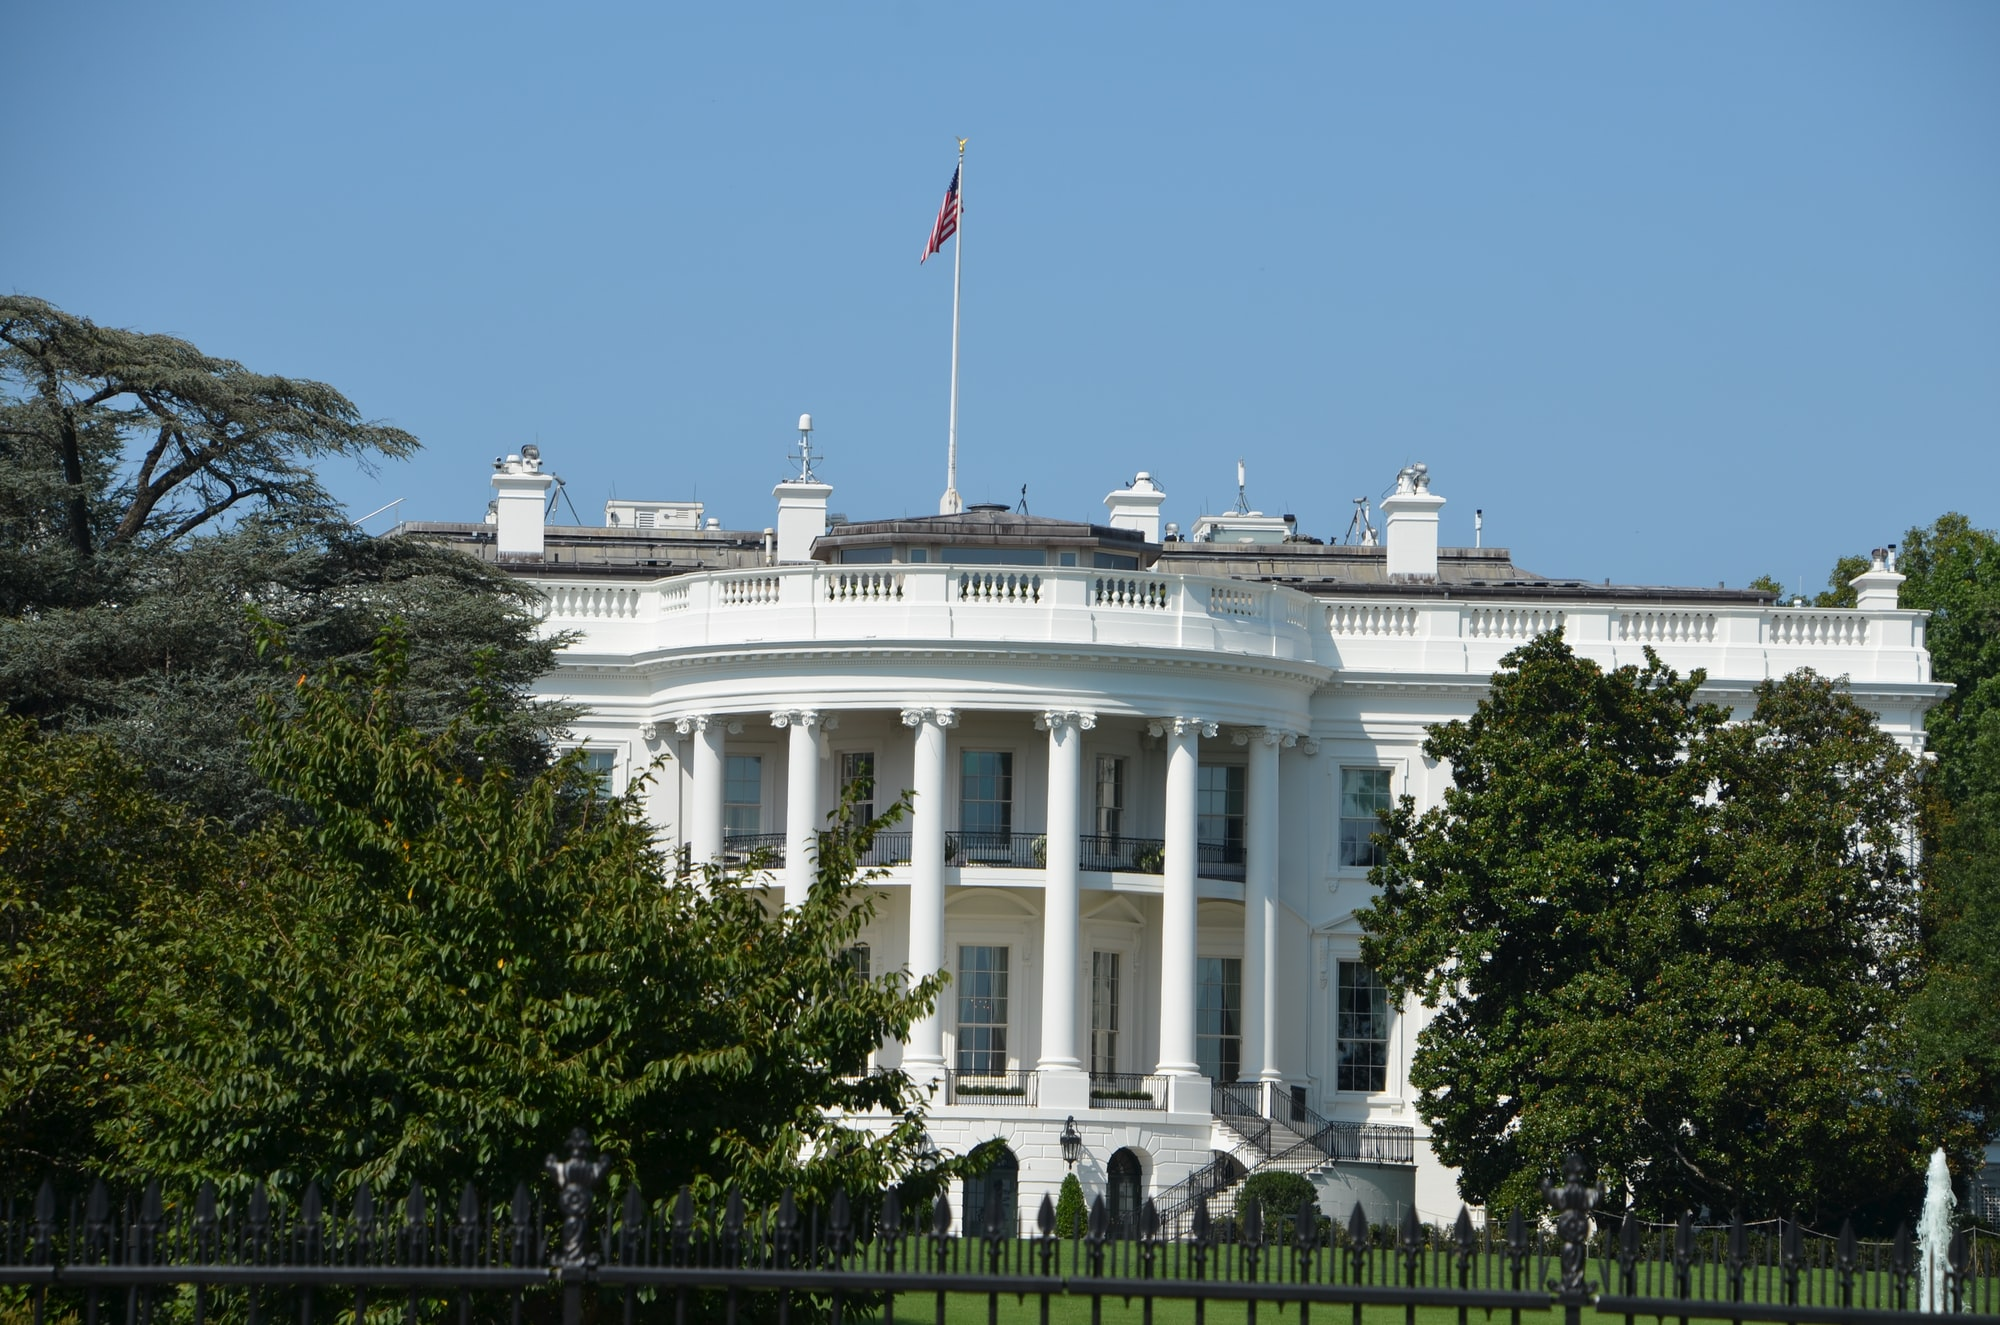 ThinkWater Initiatives Featured in White House Press Release